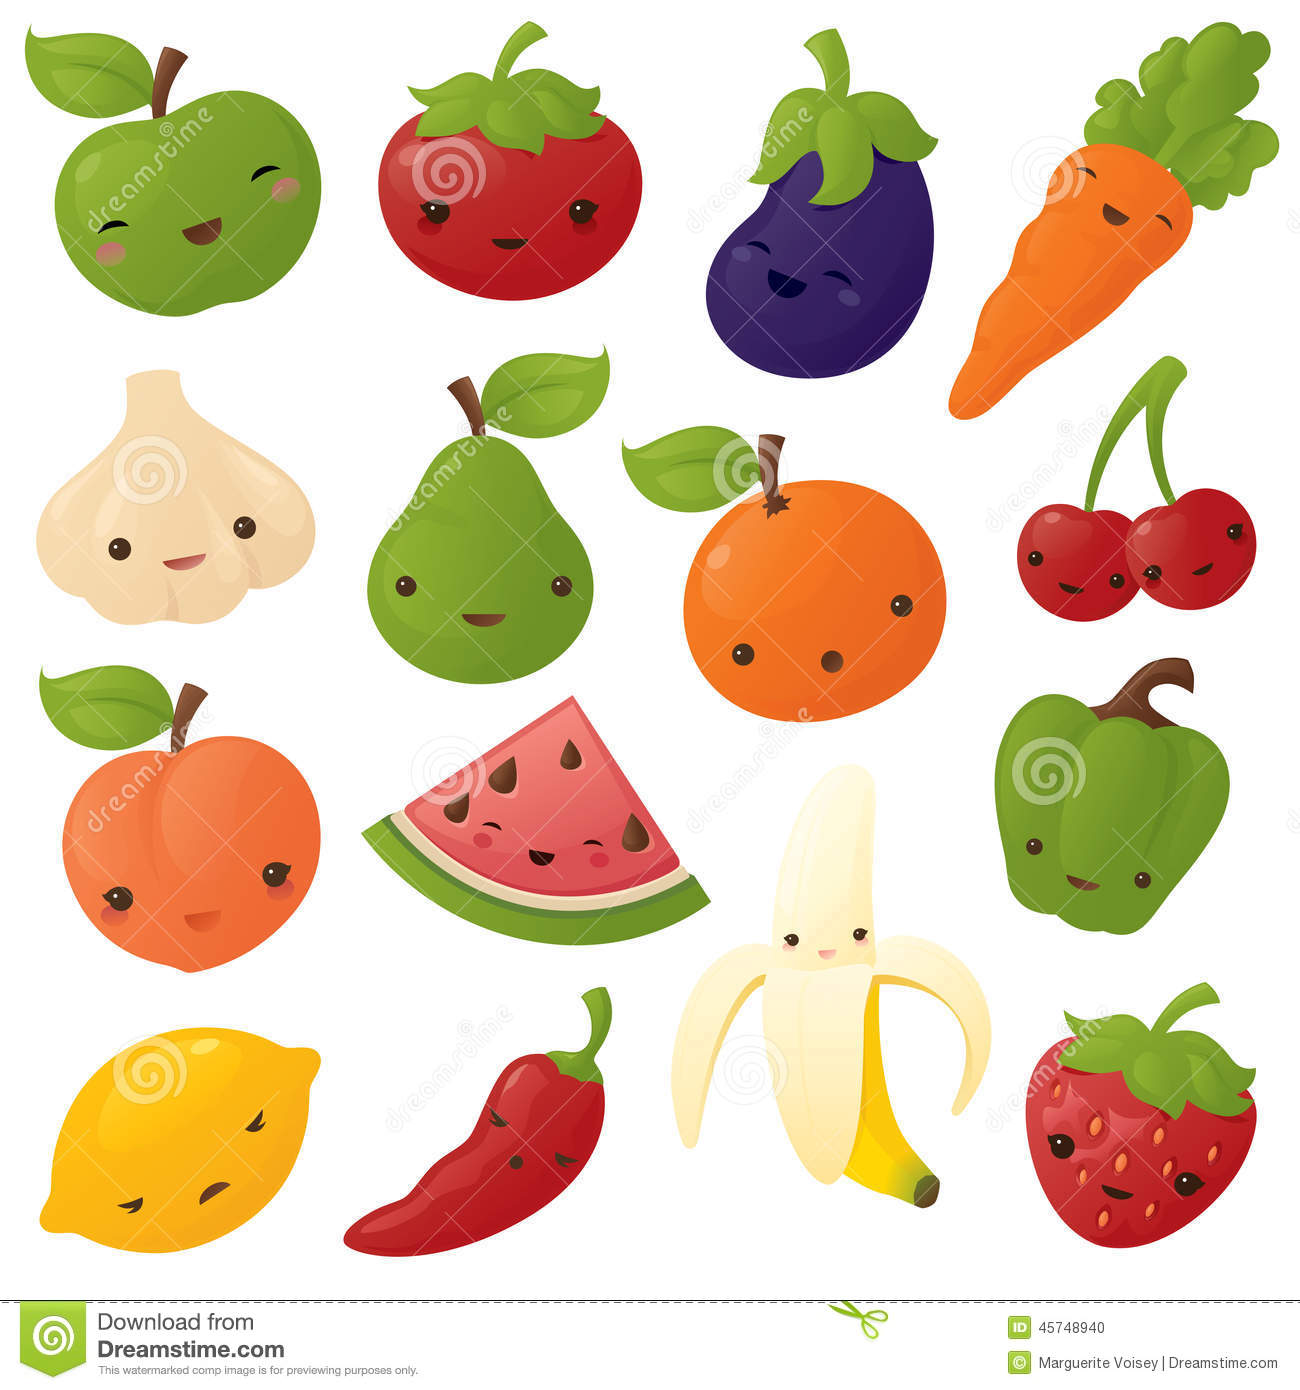 Kawaii fruit and Vegetables